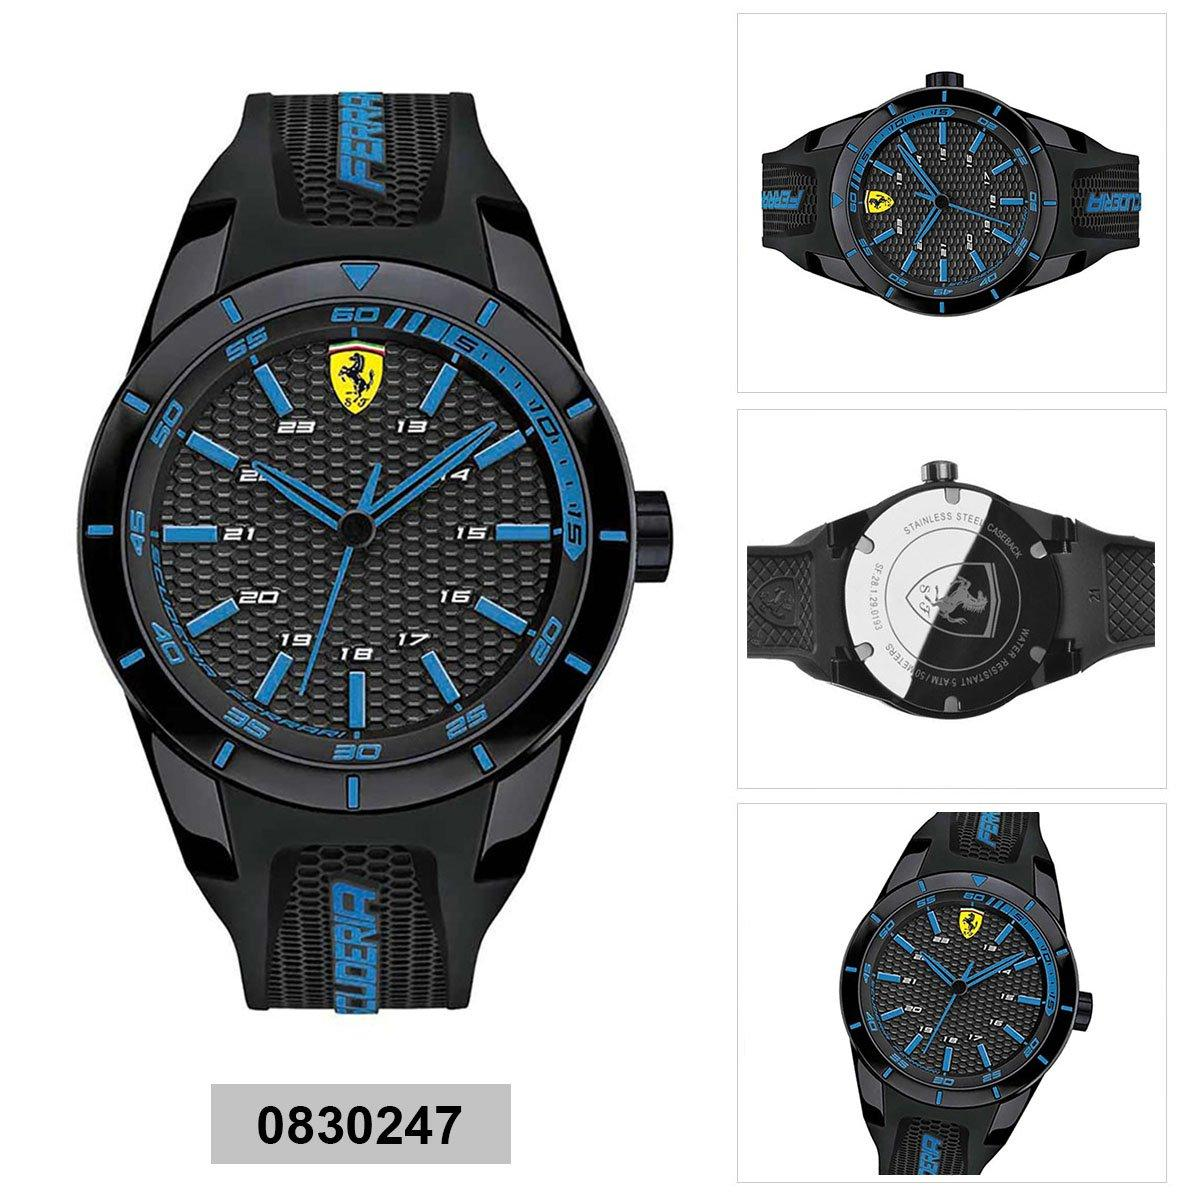 Promo Ferrari Watch Redrev Black Plastic Case Rubber Strap Mens 0830247